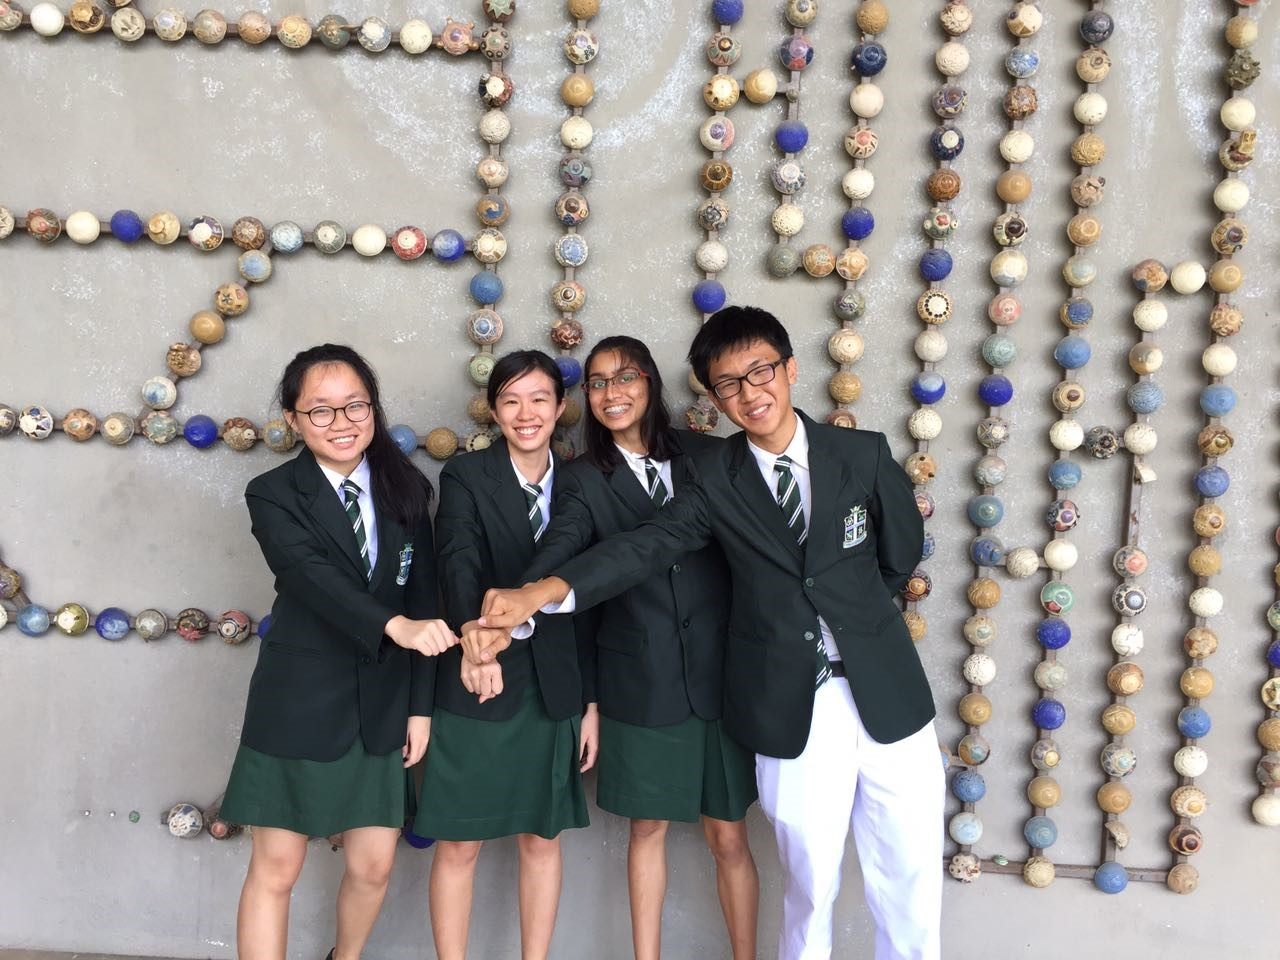 SIR-Rushe Chantel, Jia Ying, Anshiqa, Sean.jpg